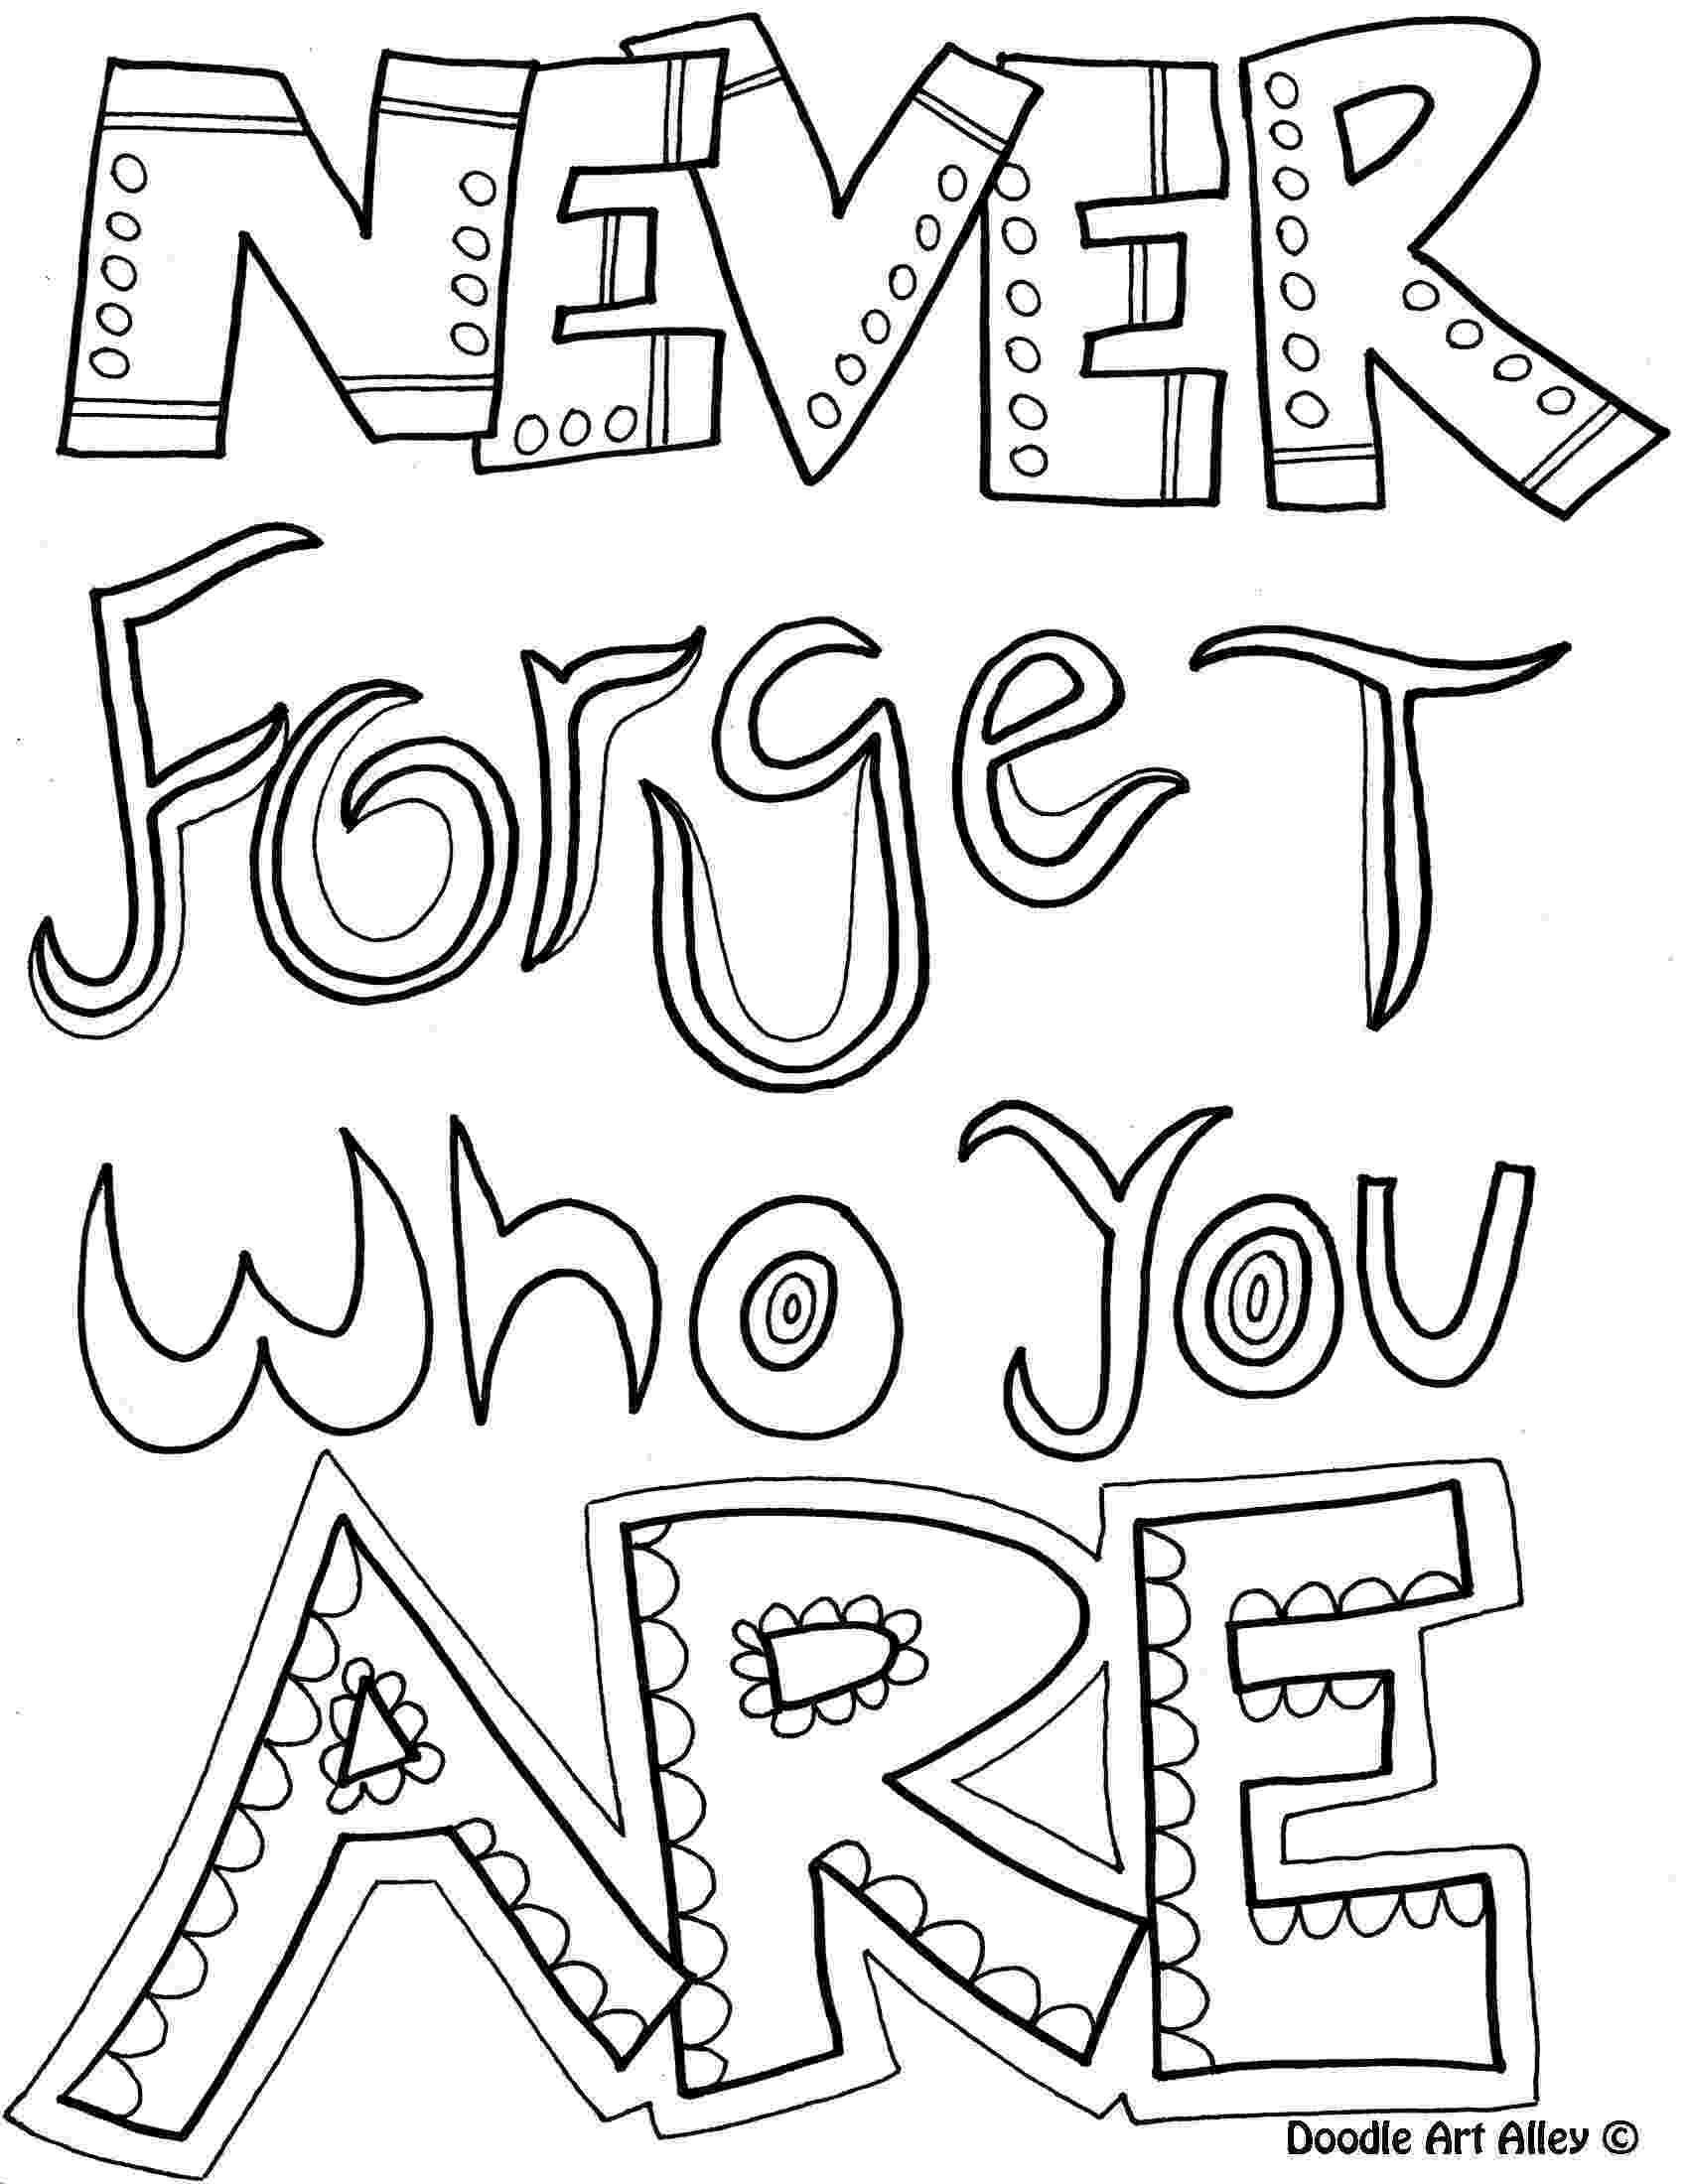 inspirational quotes colouring pages inspirational coloring pages to download and print for free pages inspirational colouring quotes